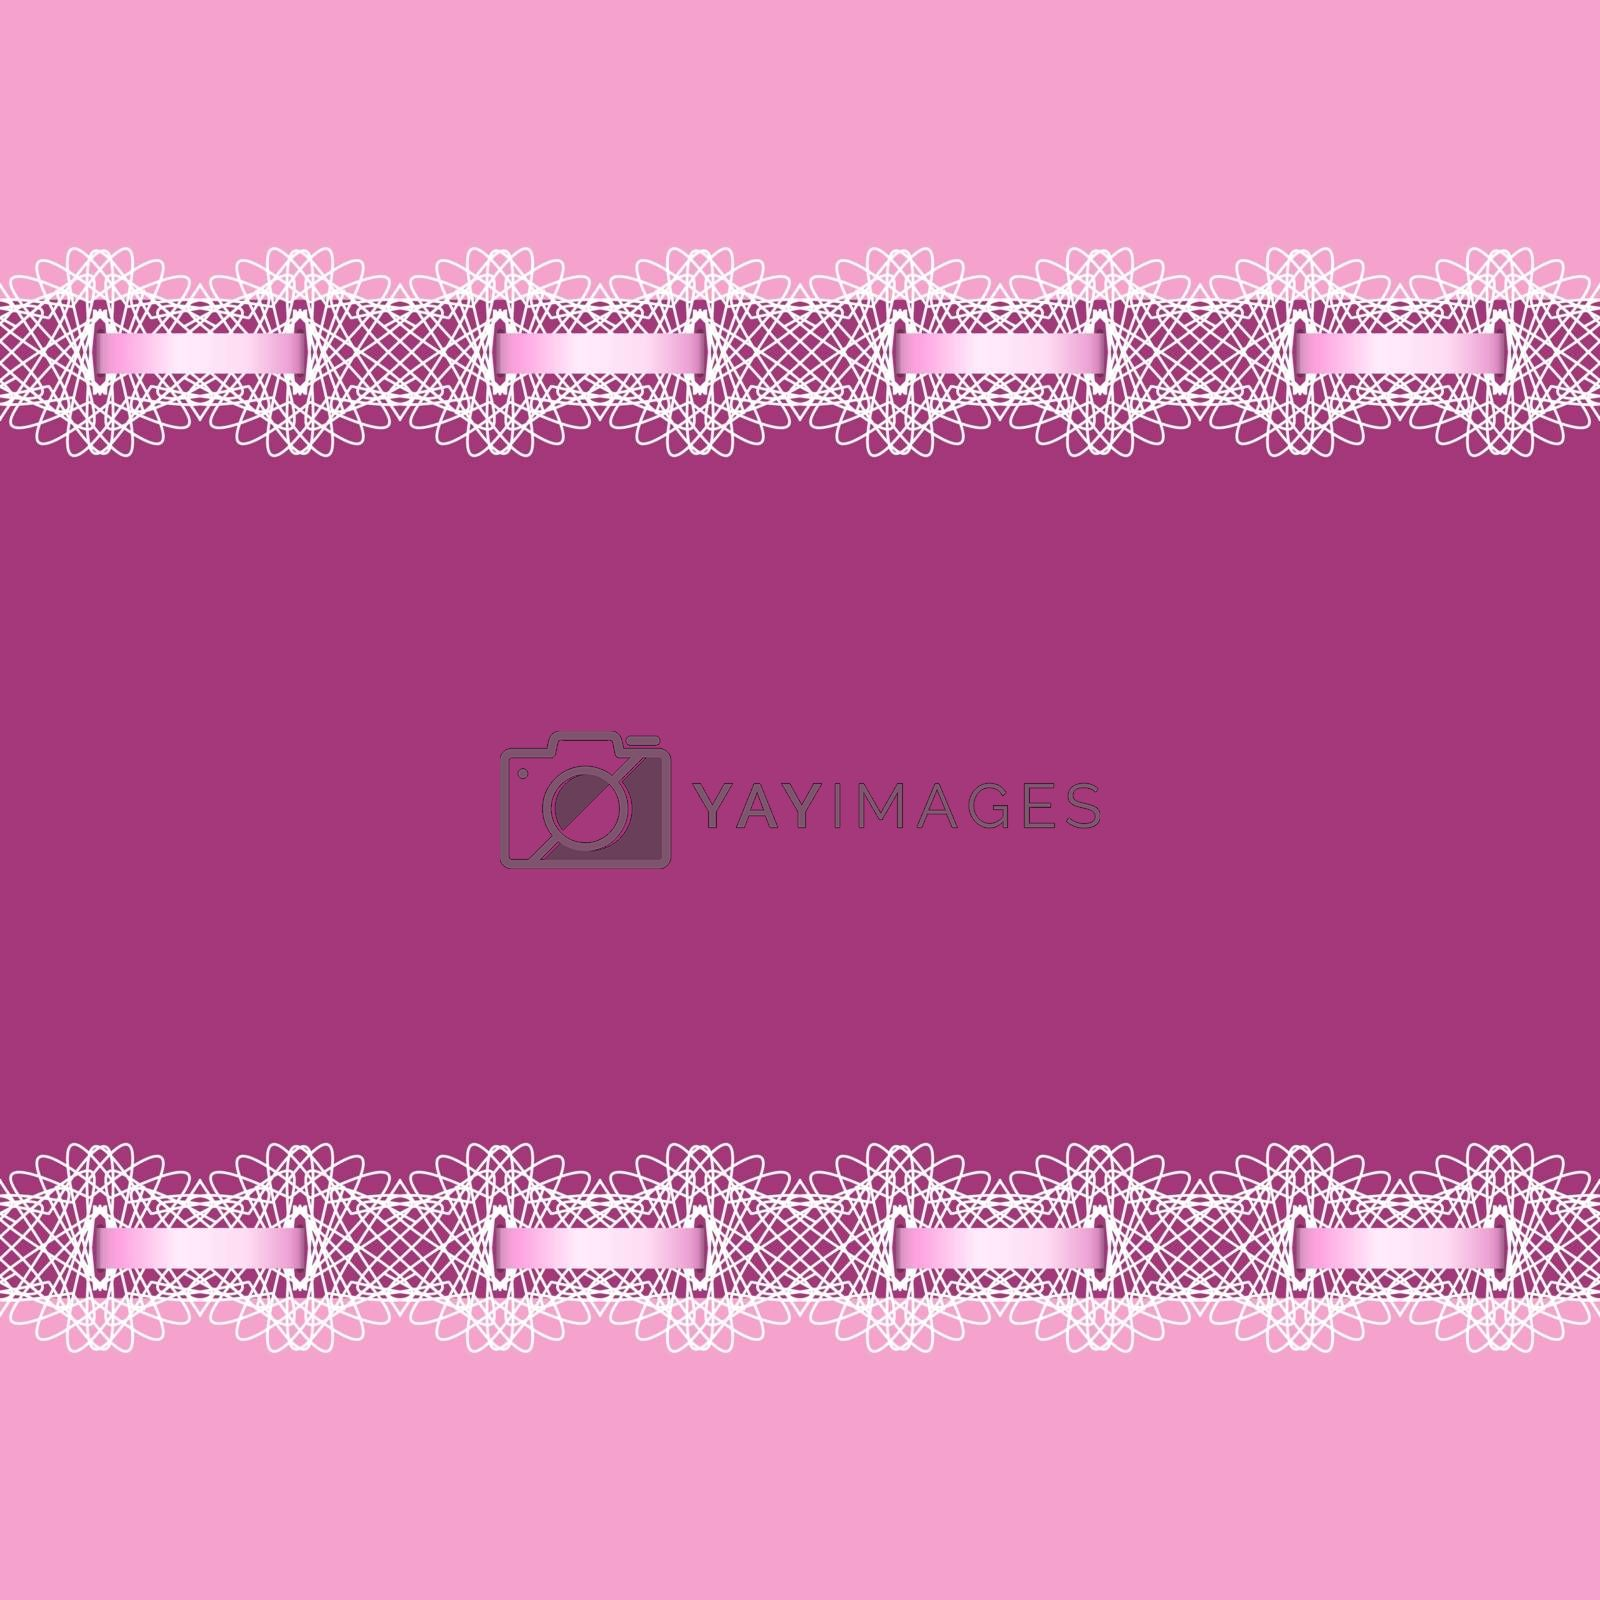 Abstract background decorated with lace and ribbon. Frame for message.